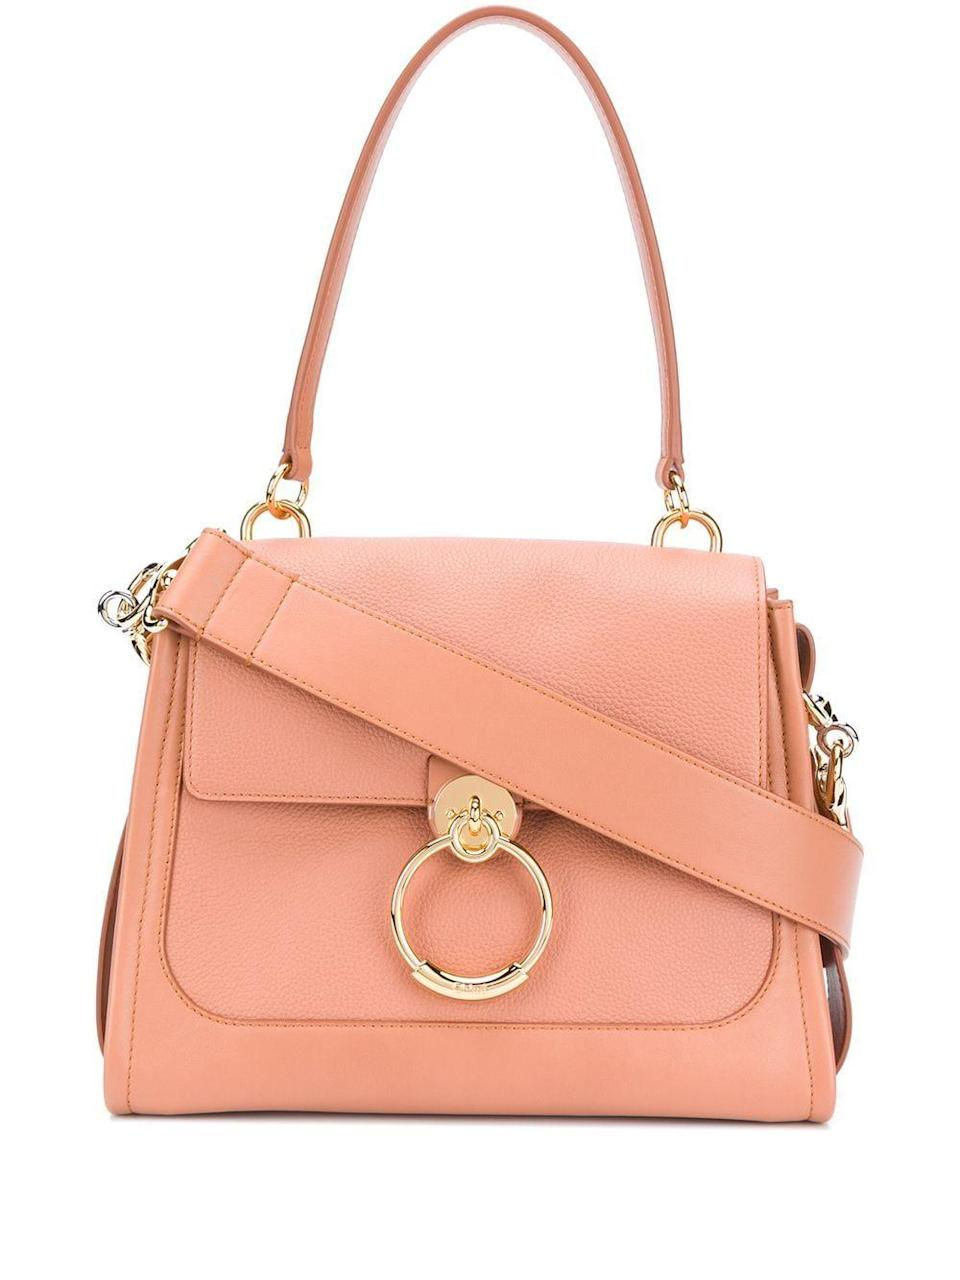 """<p><strong>Chloé</strong></p><p>farfetch.com</p><p><a href=""""https://go.redirectingat.com?id=74968X1596630&url=https%3A%2F%2Fwww.farfetch.com%2Fshopping%2Fwomen%2Fchloe-small-tess-day-bag-item-15635421.aspx&sref=https%3A%2F%2Fwww.elle.com%2Ffashion%2Fshopping%2Fg36292145%2Fmothers-day-gifts-sale%2F"""" rel=""""nofollow noopener"""" target=""""_blank"""" data-ylk=""""slk:Shop Now"""" class=""""link rapid-noclick-resp"""">Shop Now</a></p><p><strong><del>$2,187</del> $1,531 (30% off)</strong></p><p>The color of this bag will pair brilliantly with all her favorite white blouses and jeans. </p>"""